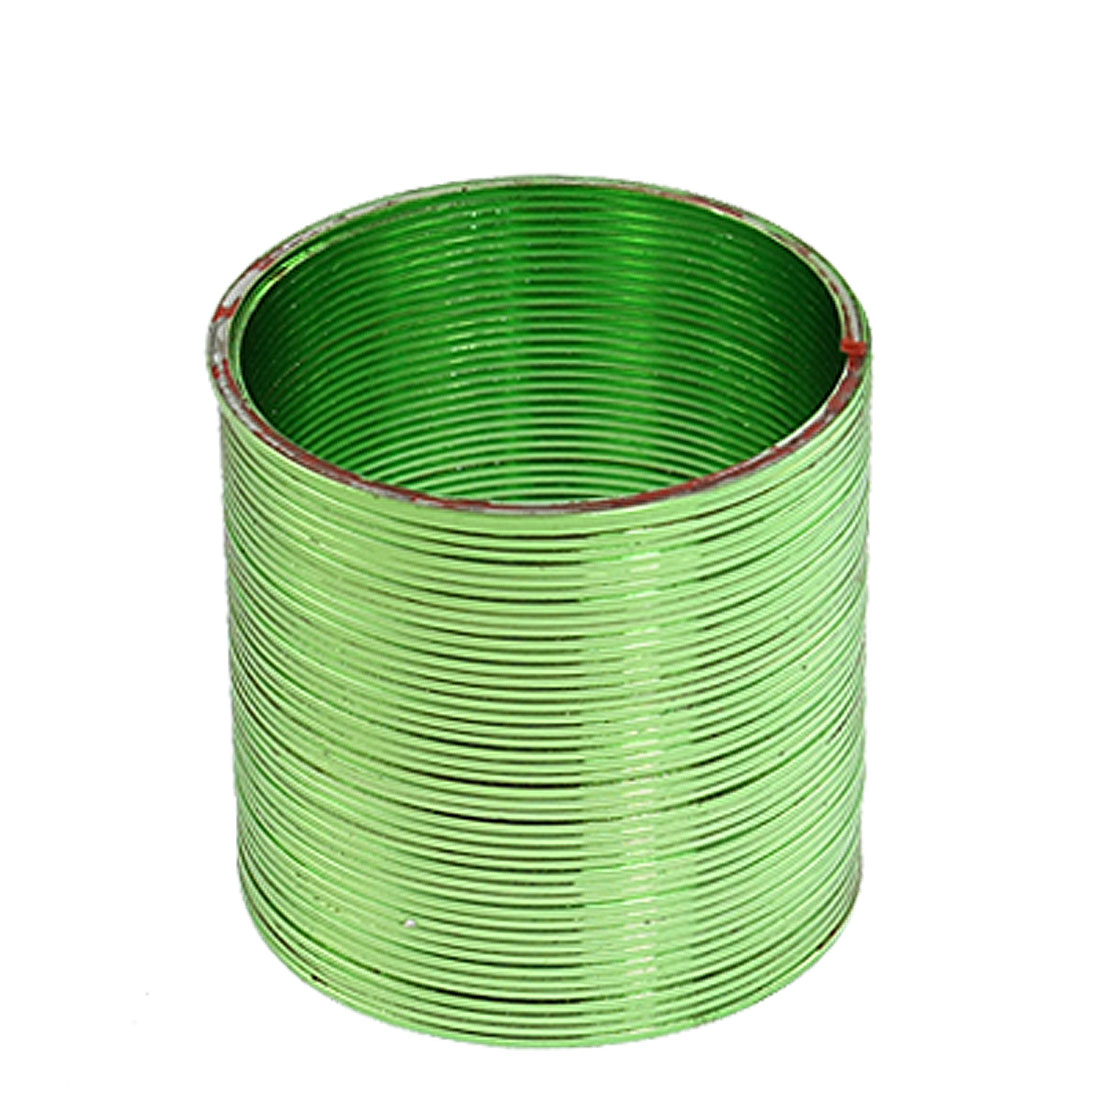 "Green Red Magic 2.6"" Dia Metallic Plastic Rainbow Coil Spring Toy"